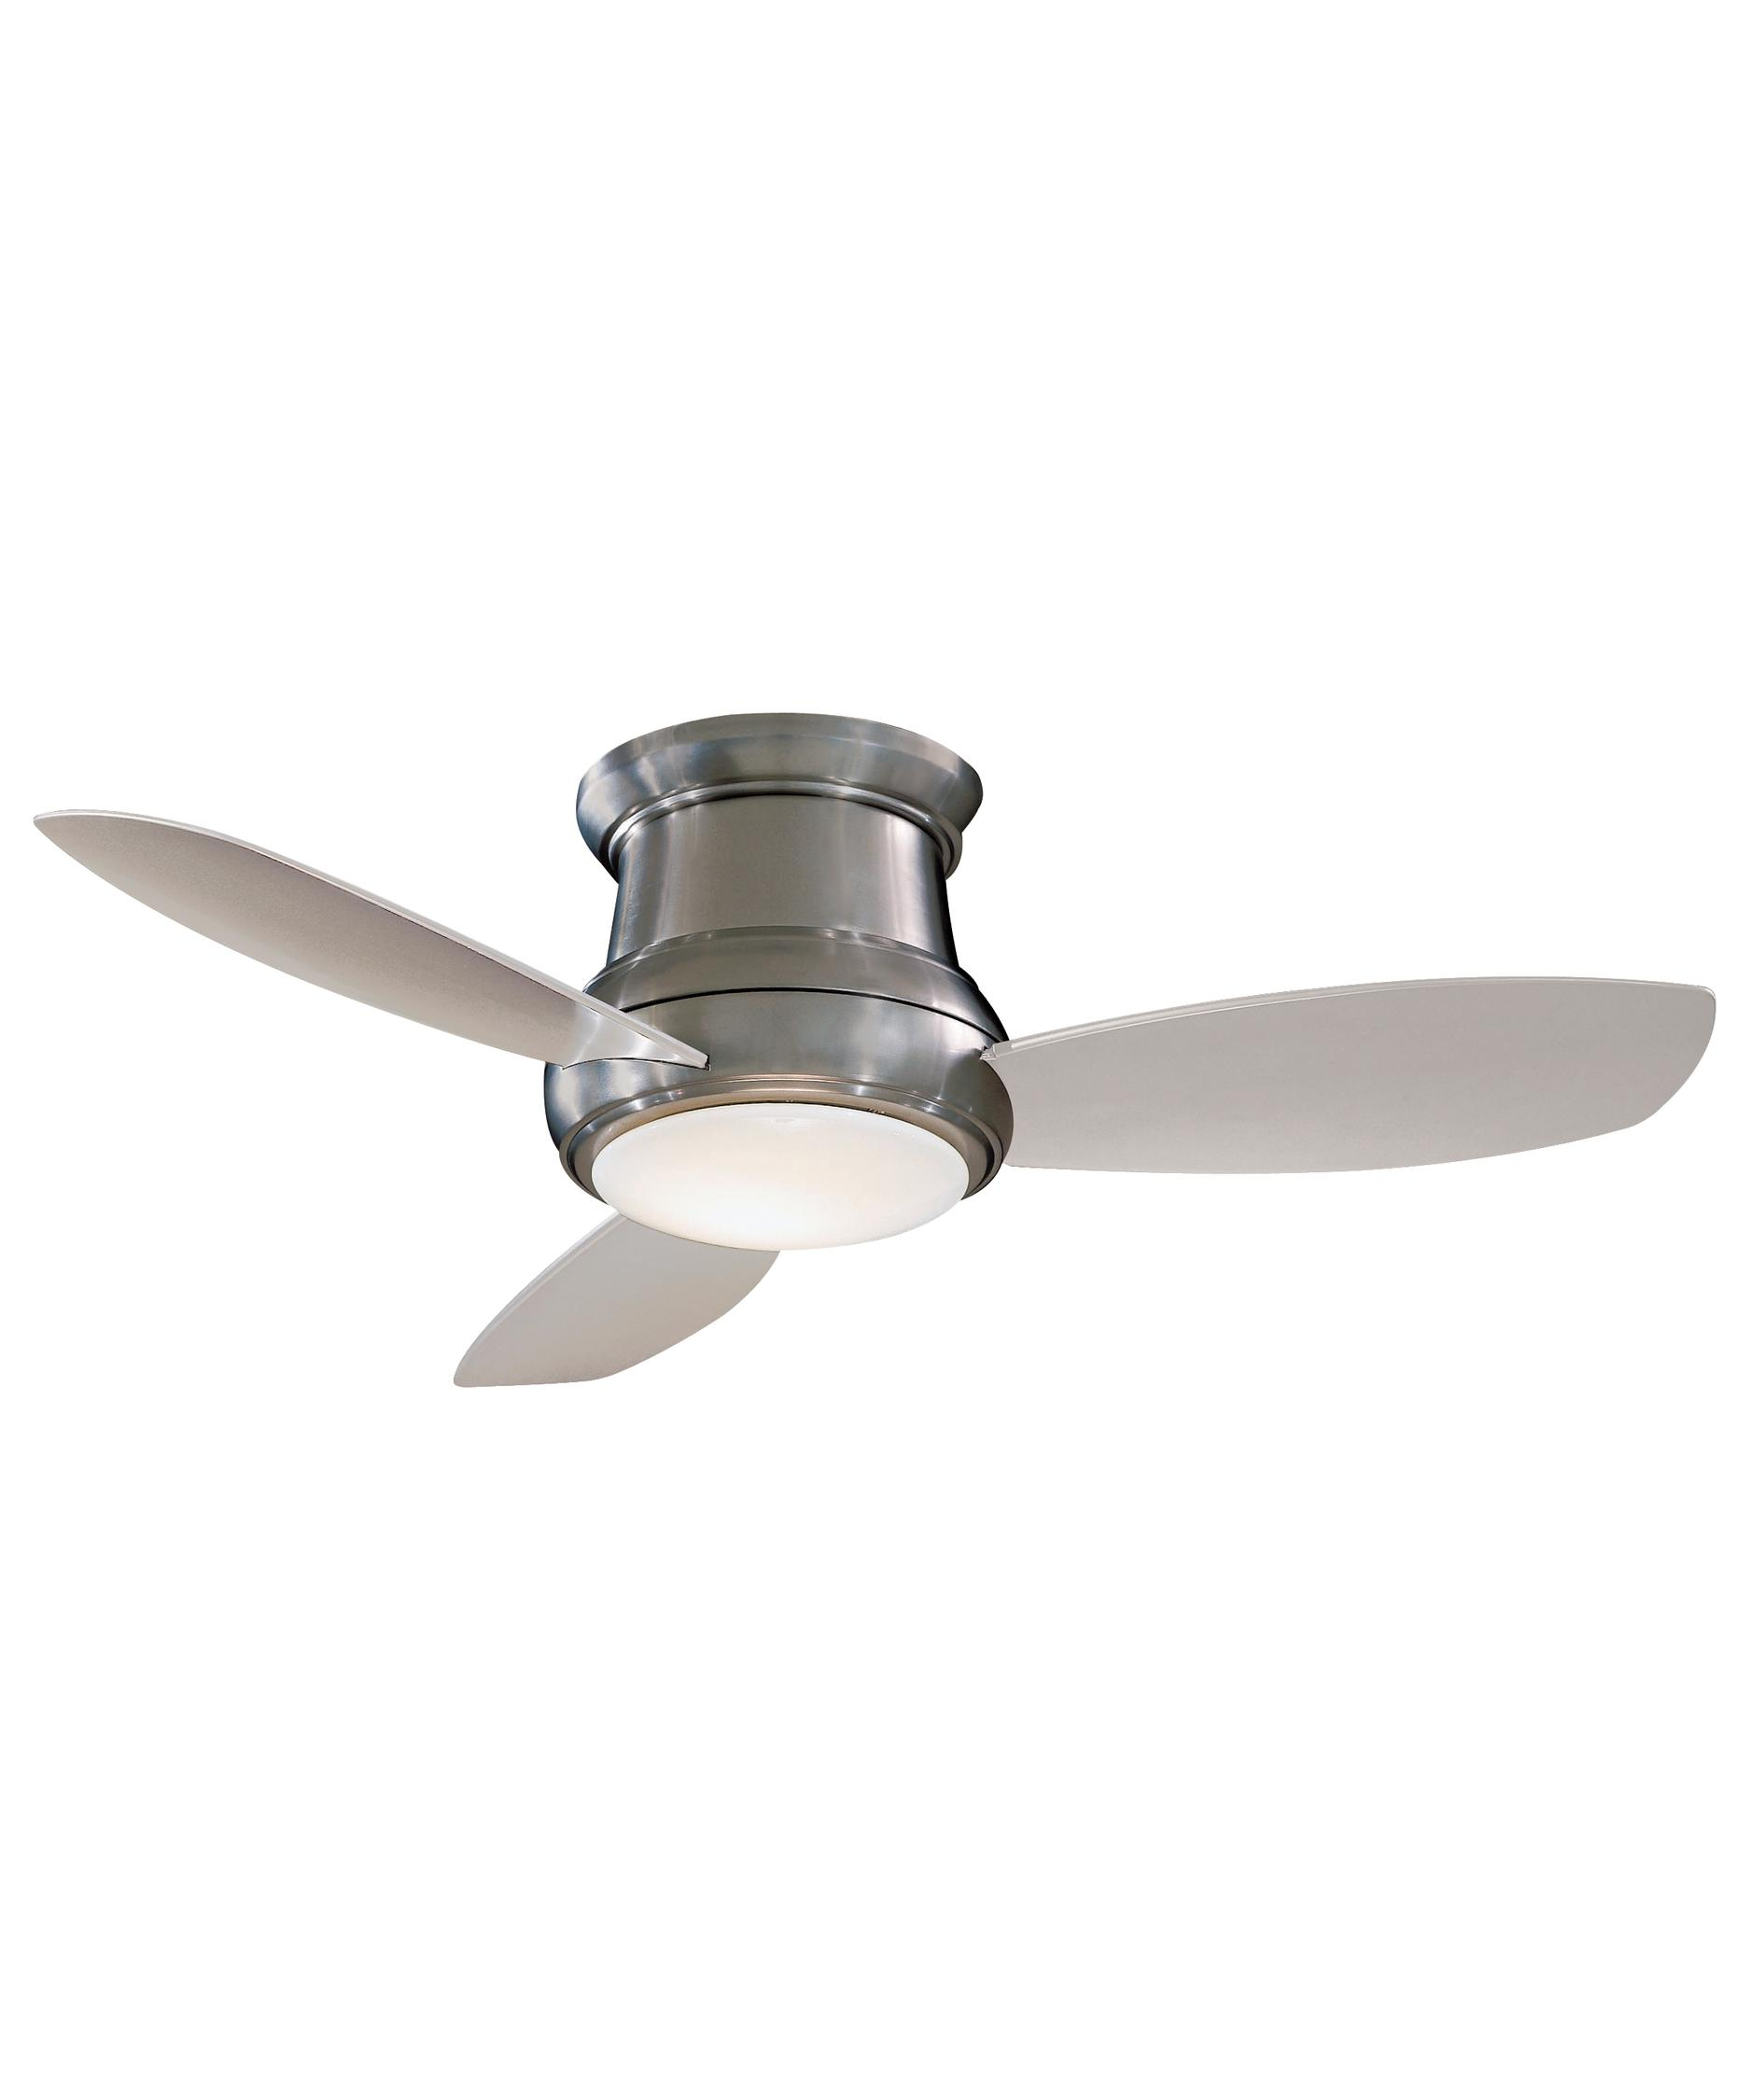 Ceiling Hugger Fans With Lights: Shown in Brushed Nickel finish,Lighting